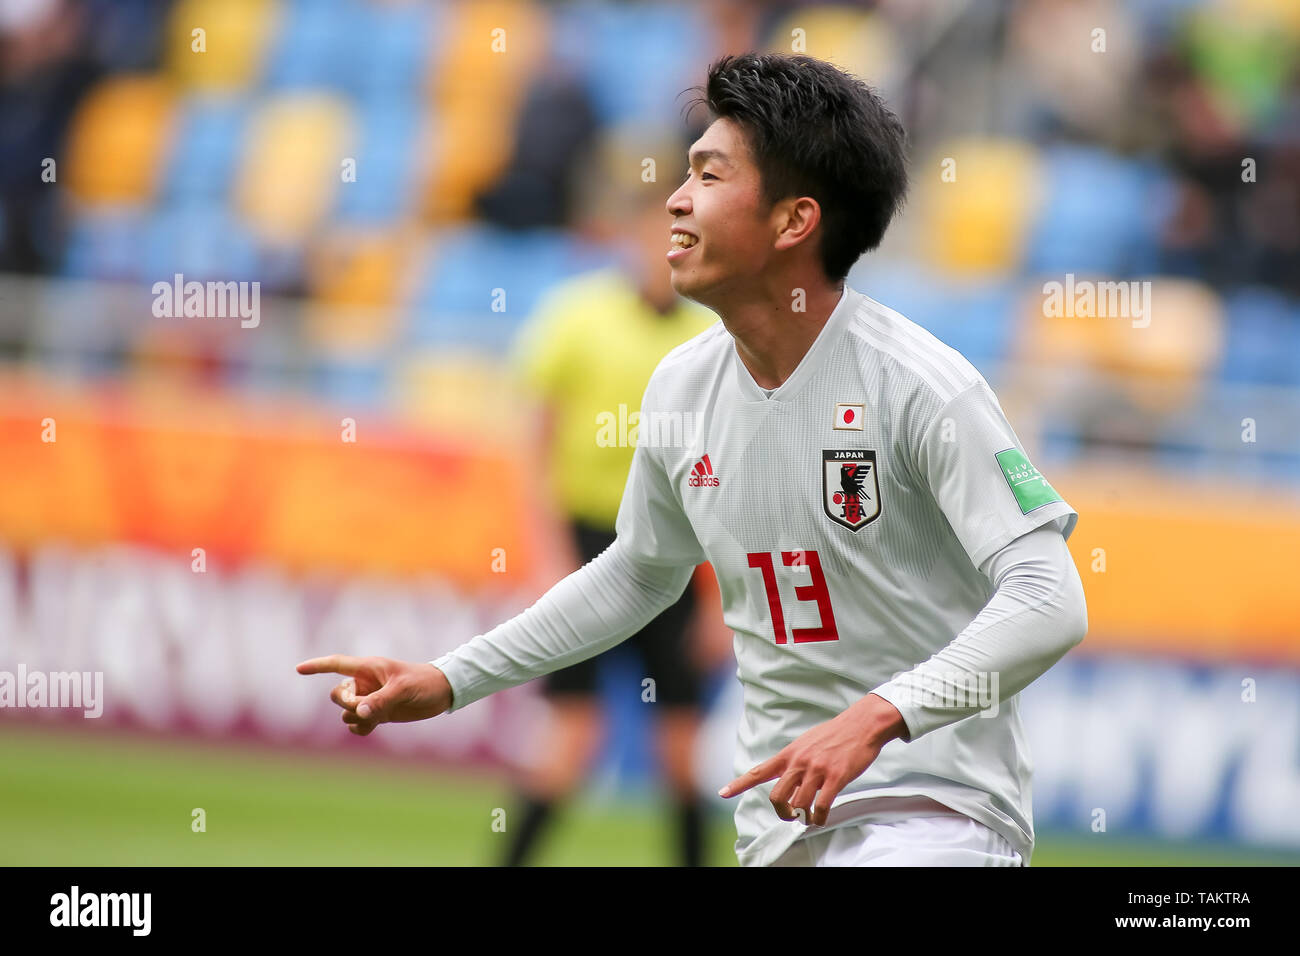 Gdynia Stadium, Gdynia, Poland - 26th May, 2019: Taisei Miyashiro from Japan celebrating after scoring a goal during FIFA U-20 World Cup match between Mexico and Japan (GROUP B) in Gdynia. (Final score; Mexico 0:3 Japan) - Stock Image